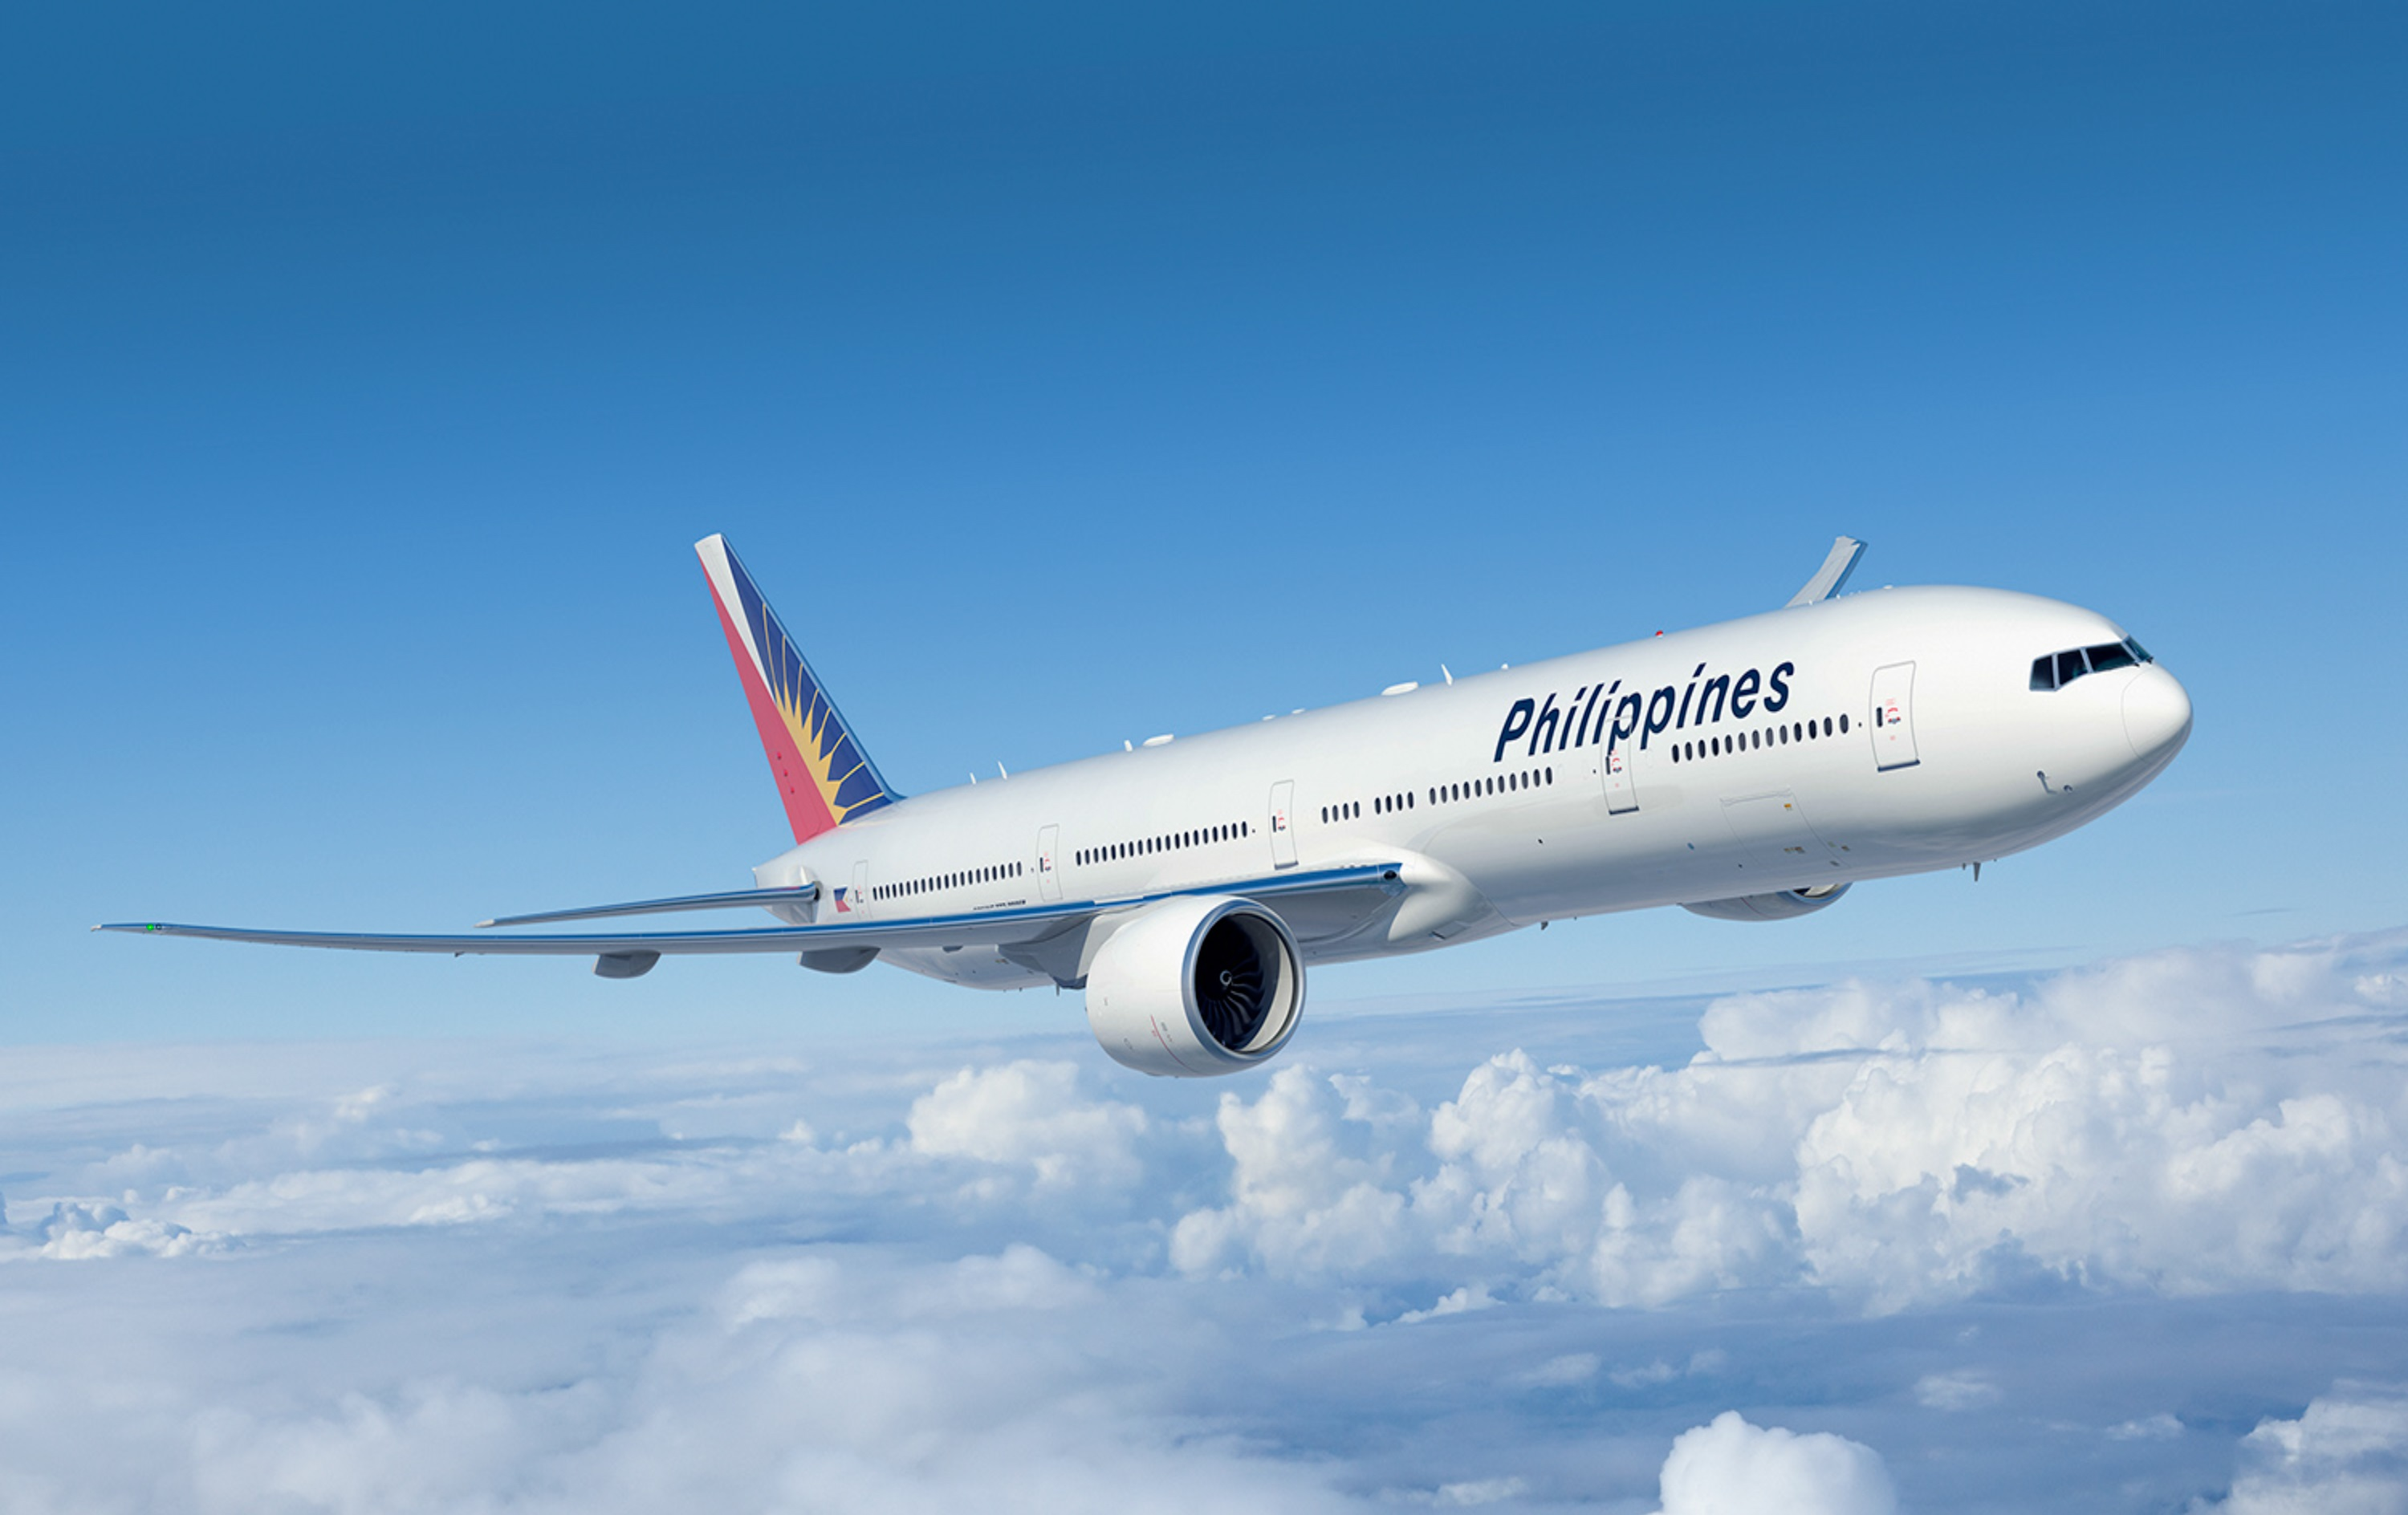 Boeing aircraft of Philippine Airlines from LAX